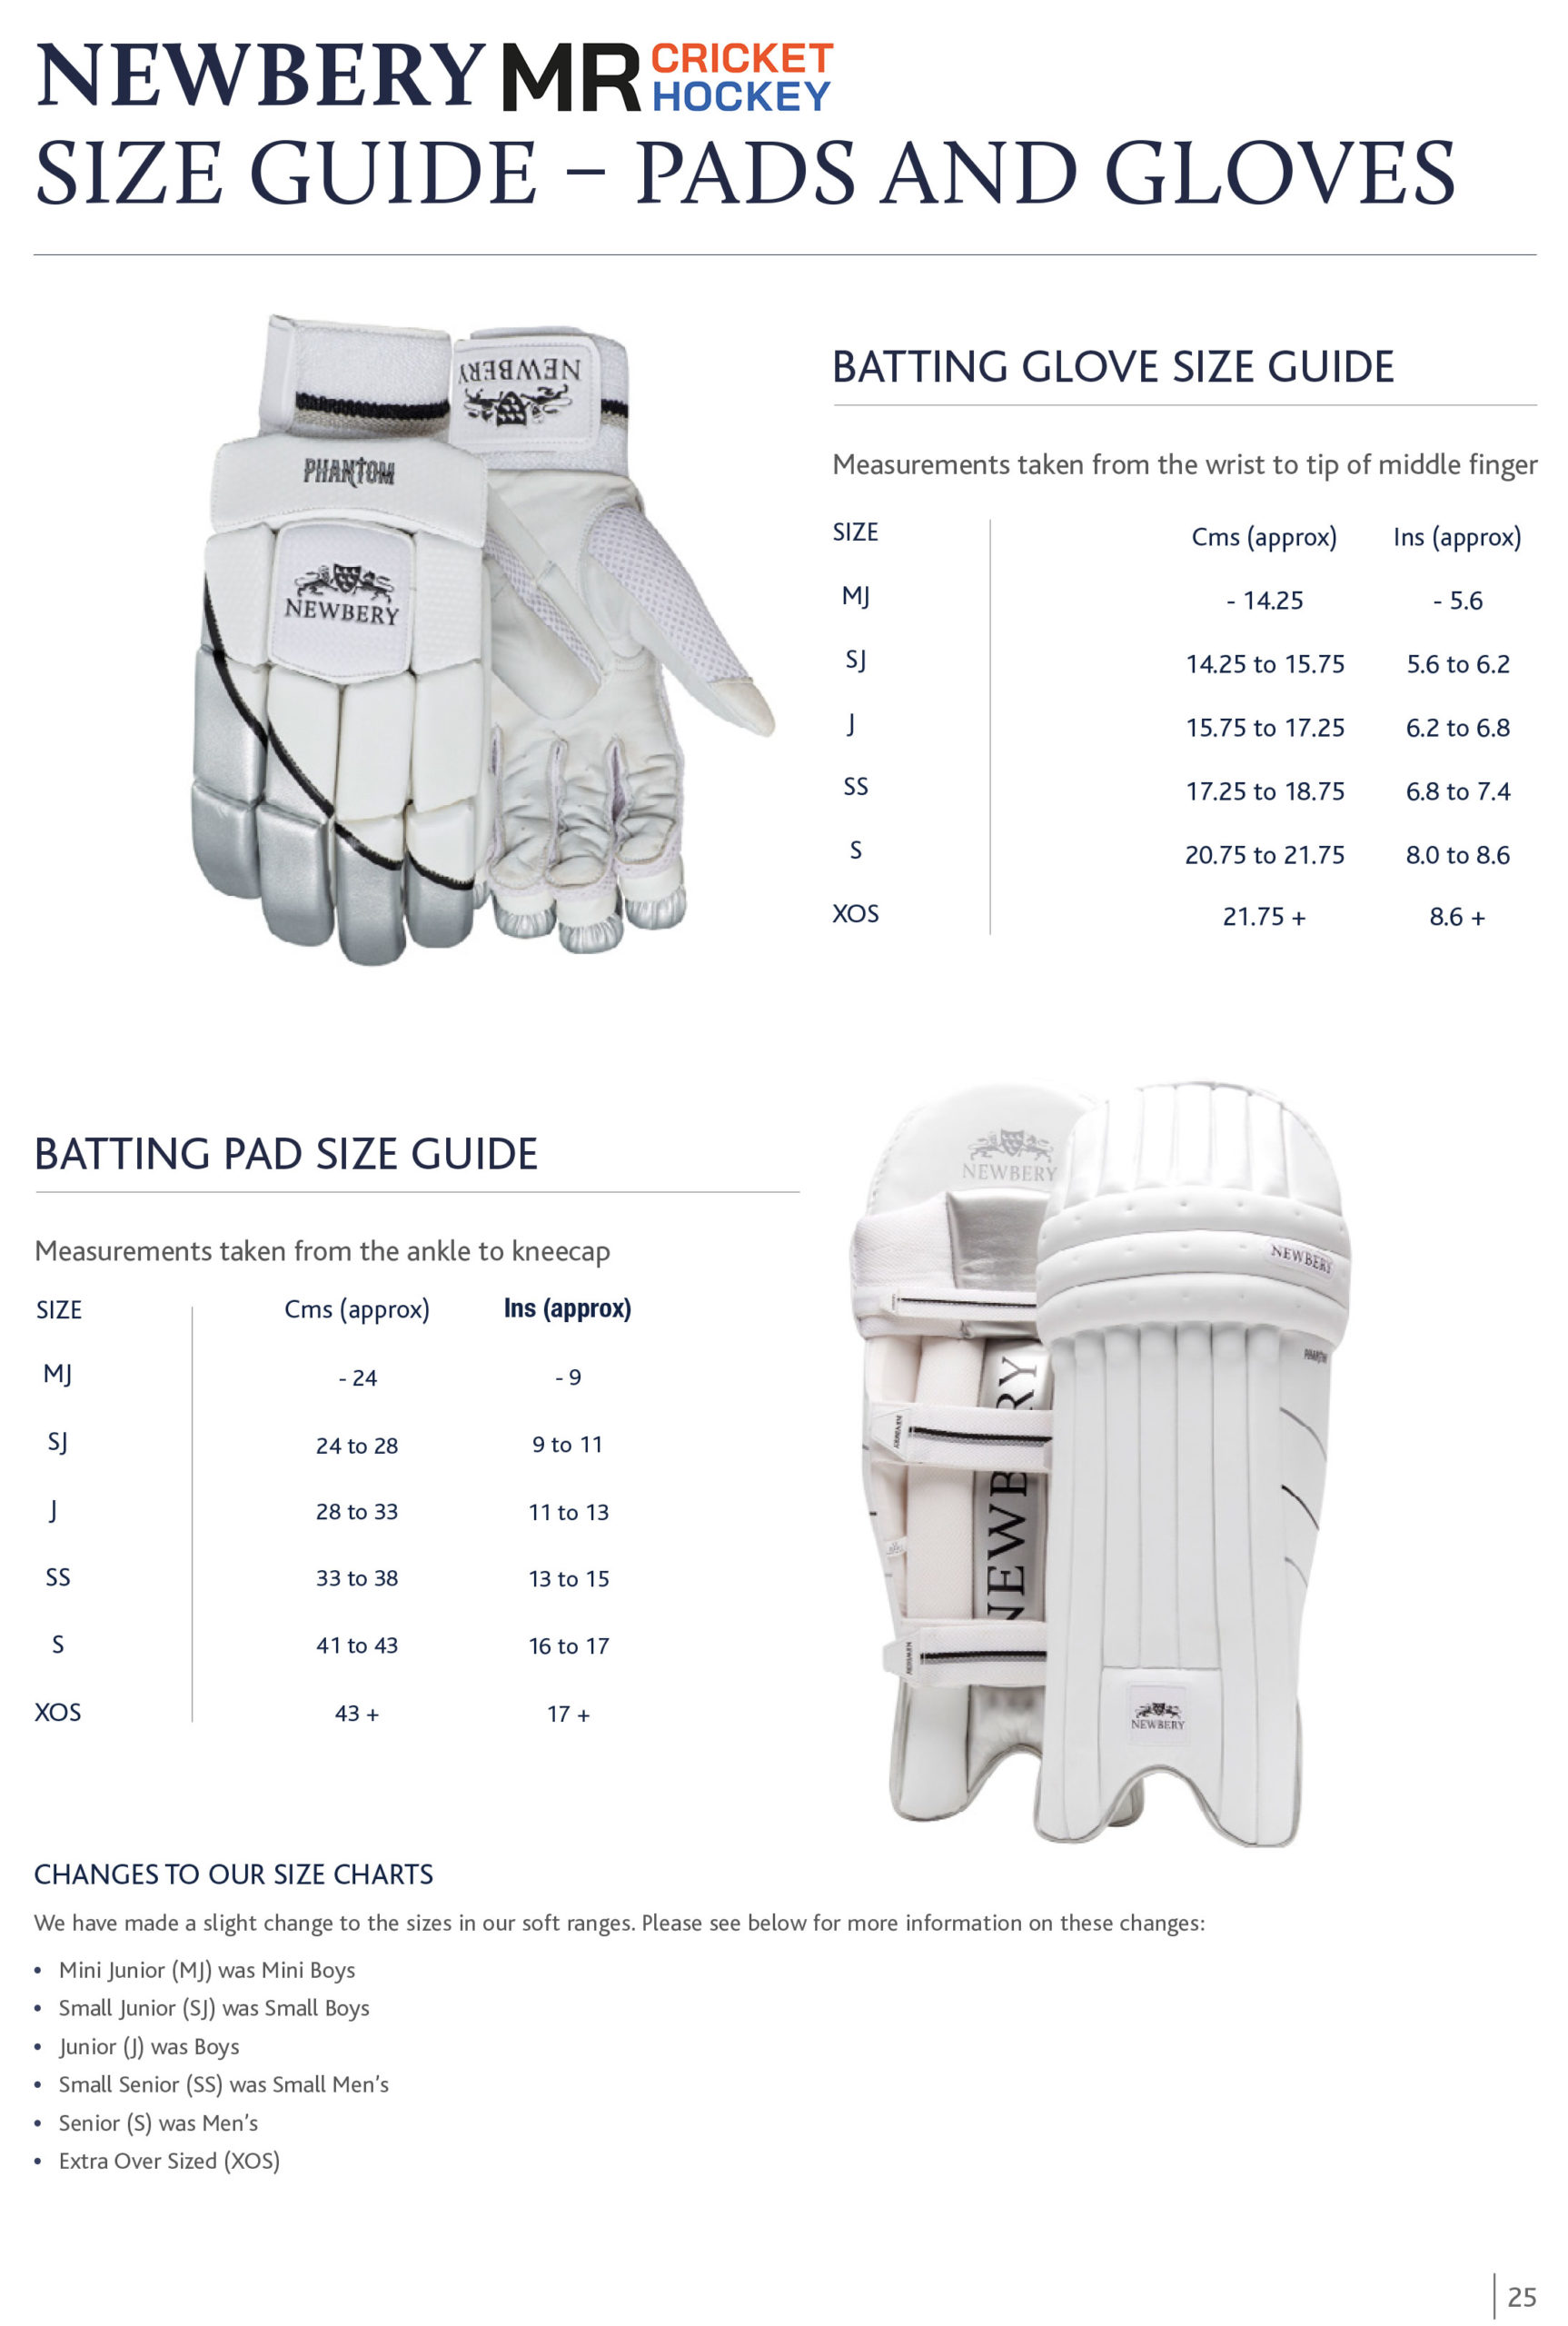 https://www.mrcrickethockey.com/wp-content/uploads/2019/03/Newbery-Cricket-Pads-and-Gloves-Size-Guide-scaled.jpg